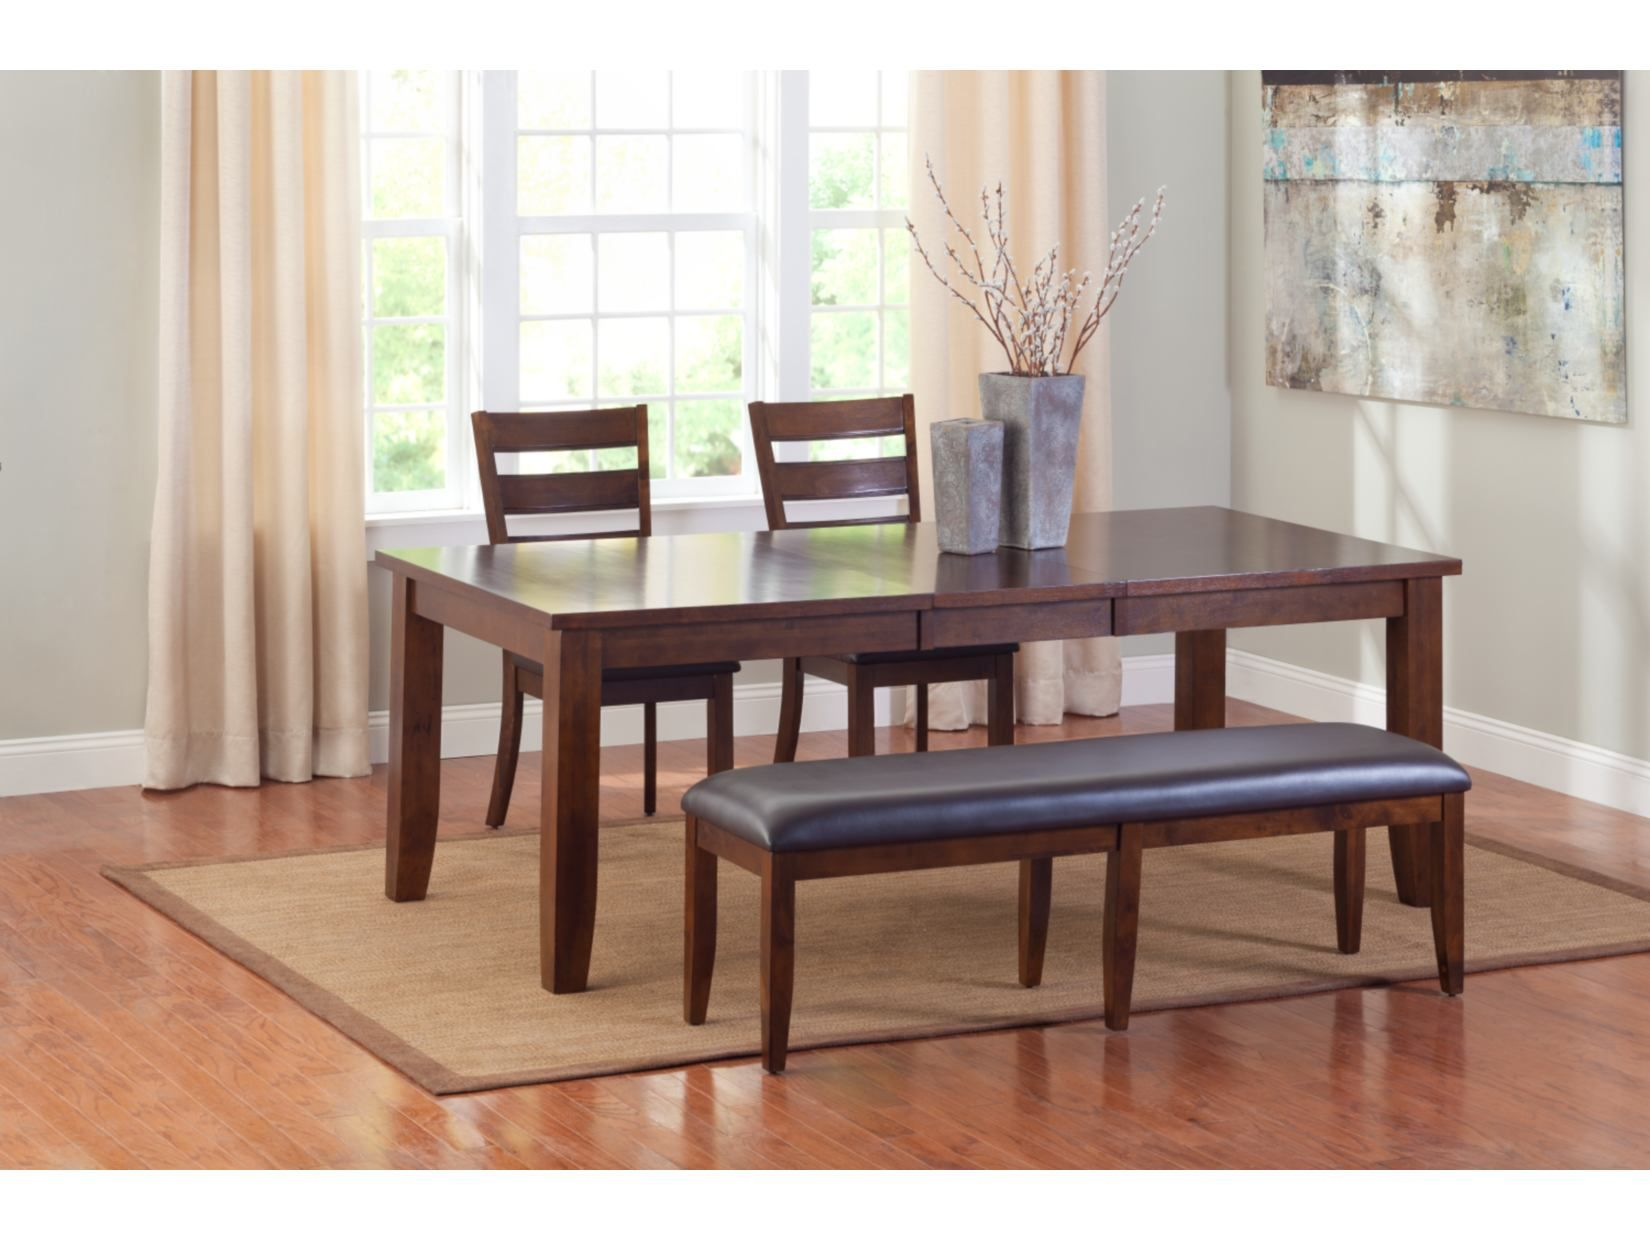 Abaco 4Pc Dinette With Bench  American Signature Furniture Enchanting American Signature Dining Room Sets Design Decoration